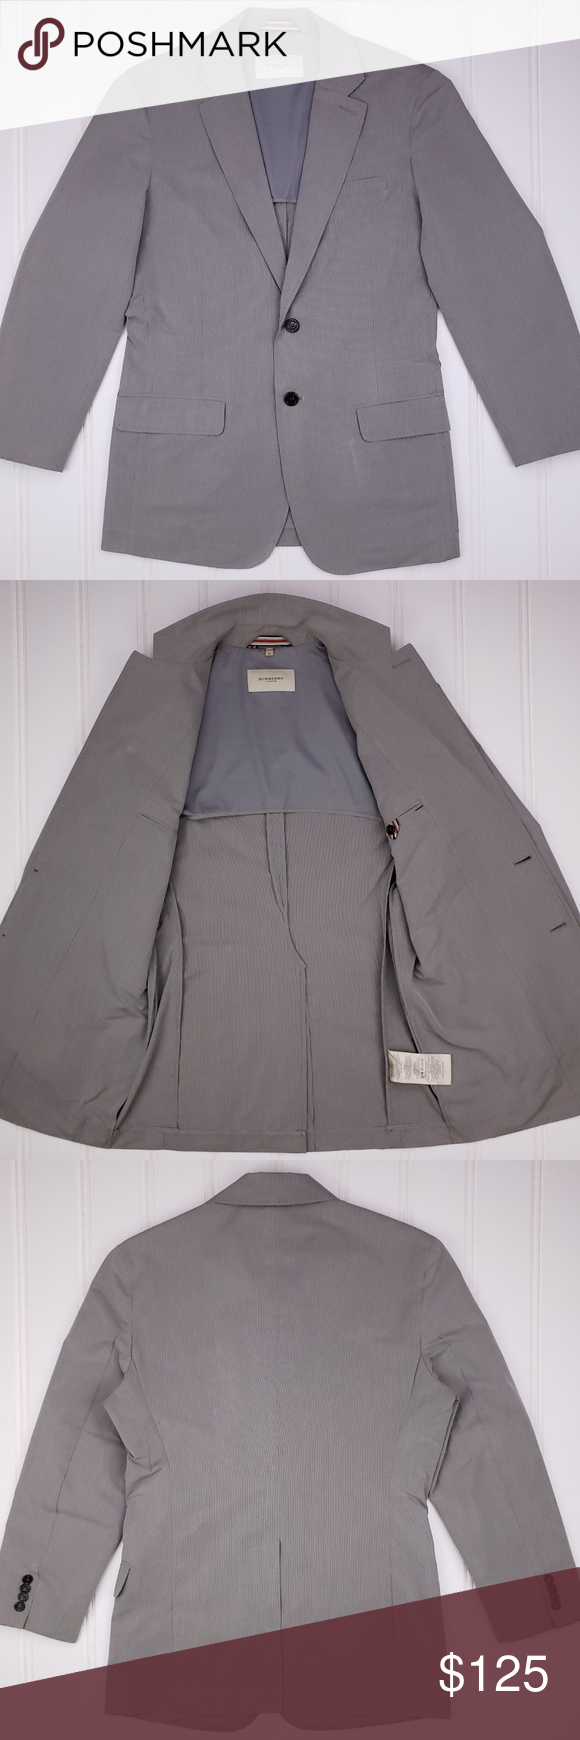 Burberry London Sport Coat Sz XL Gray Cotton Blend